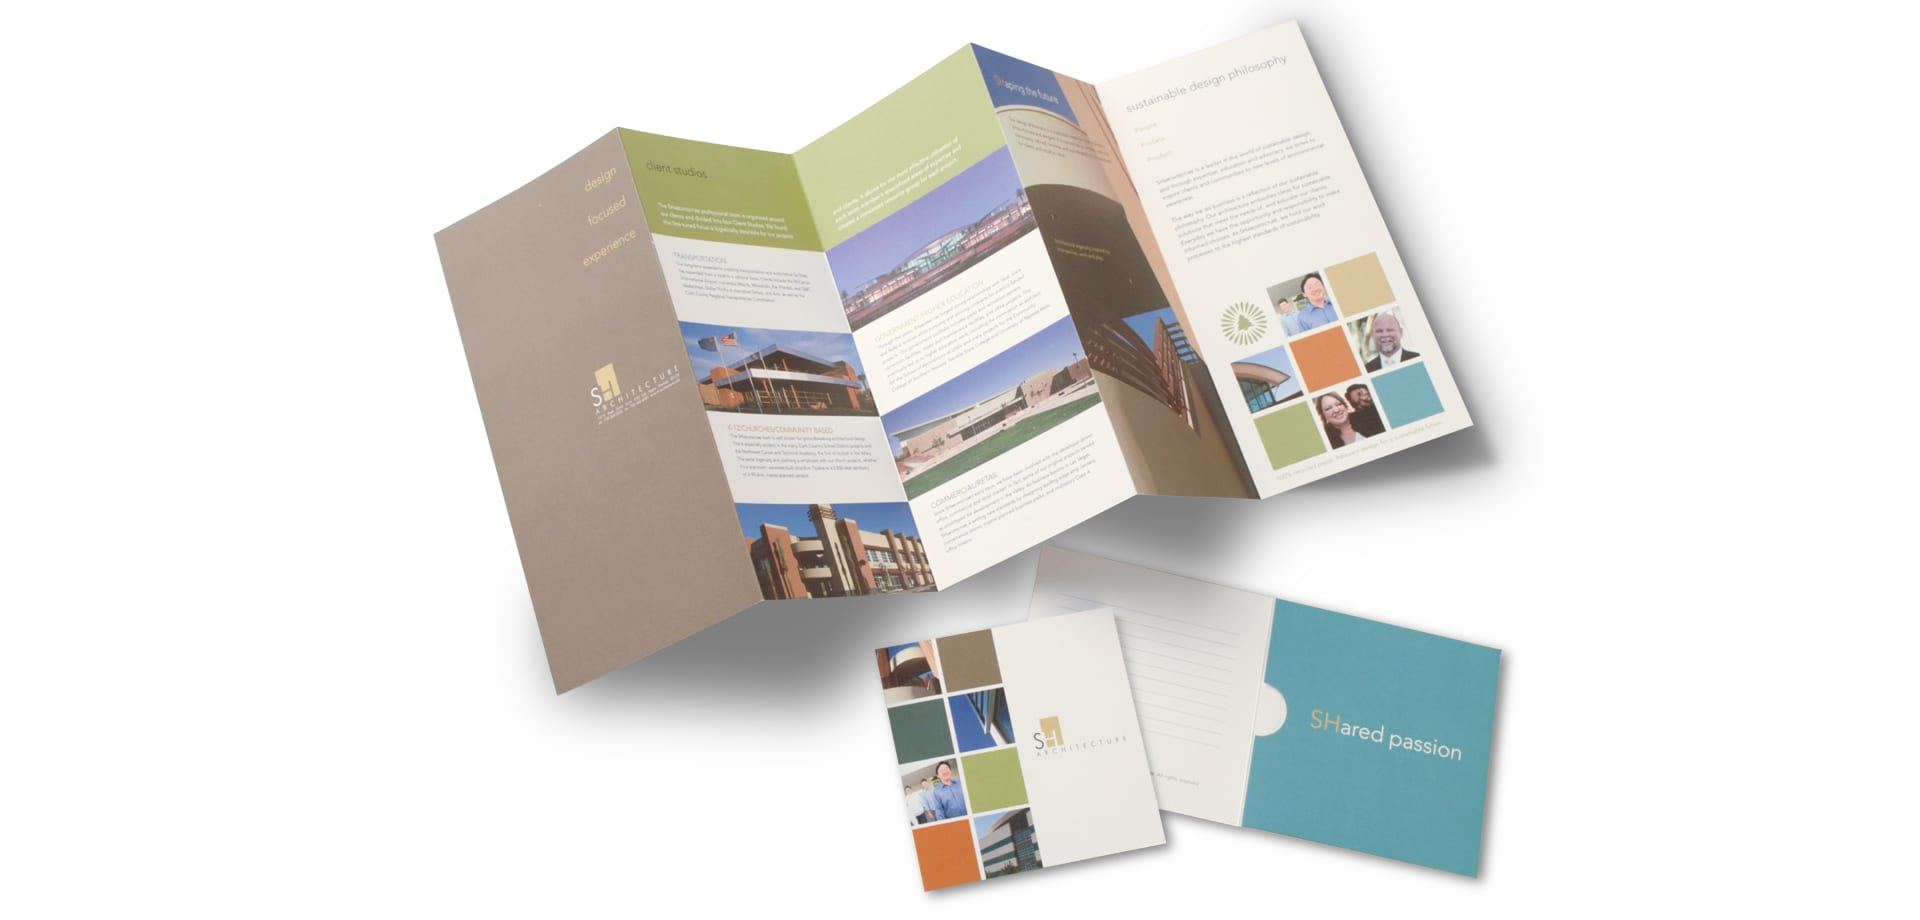 The spread out SH Architecture brochure